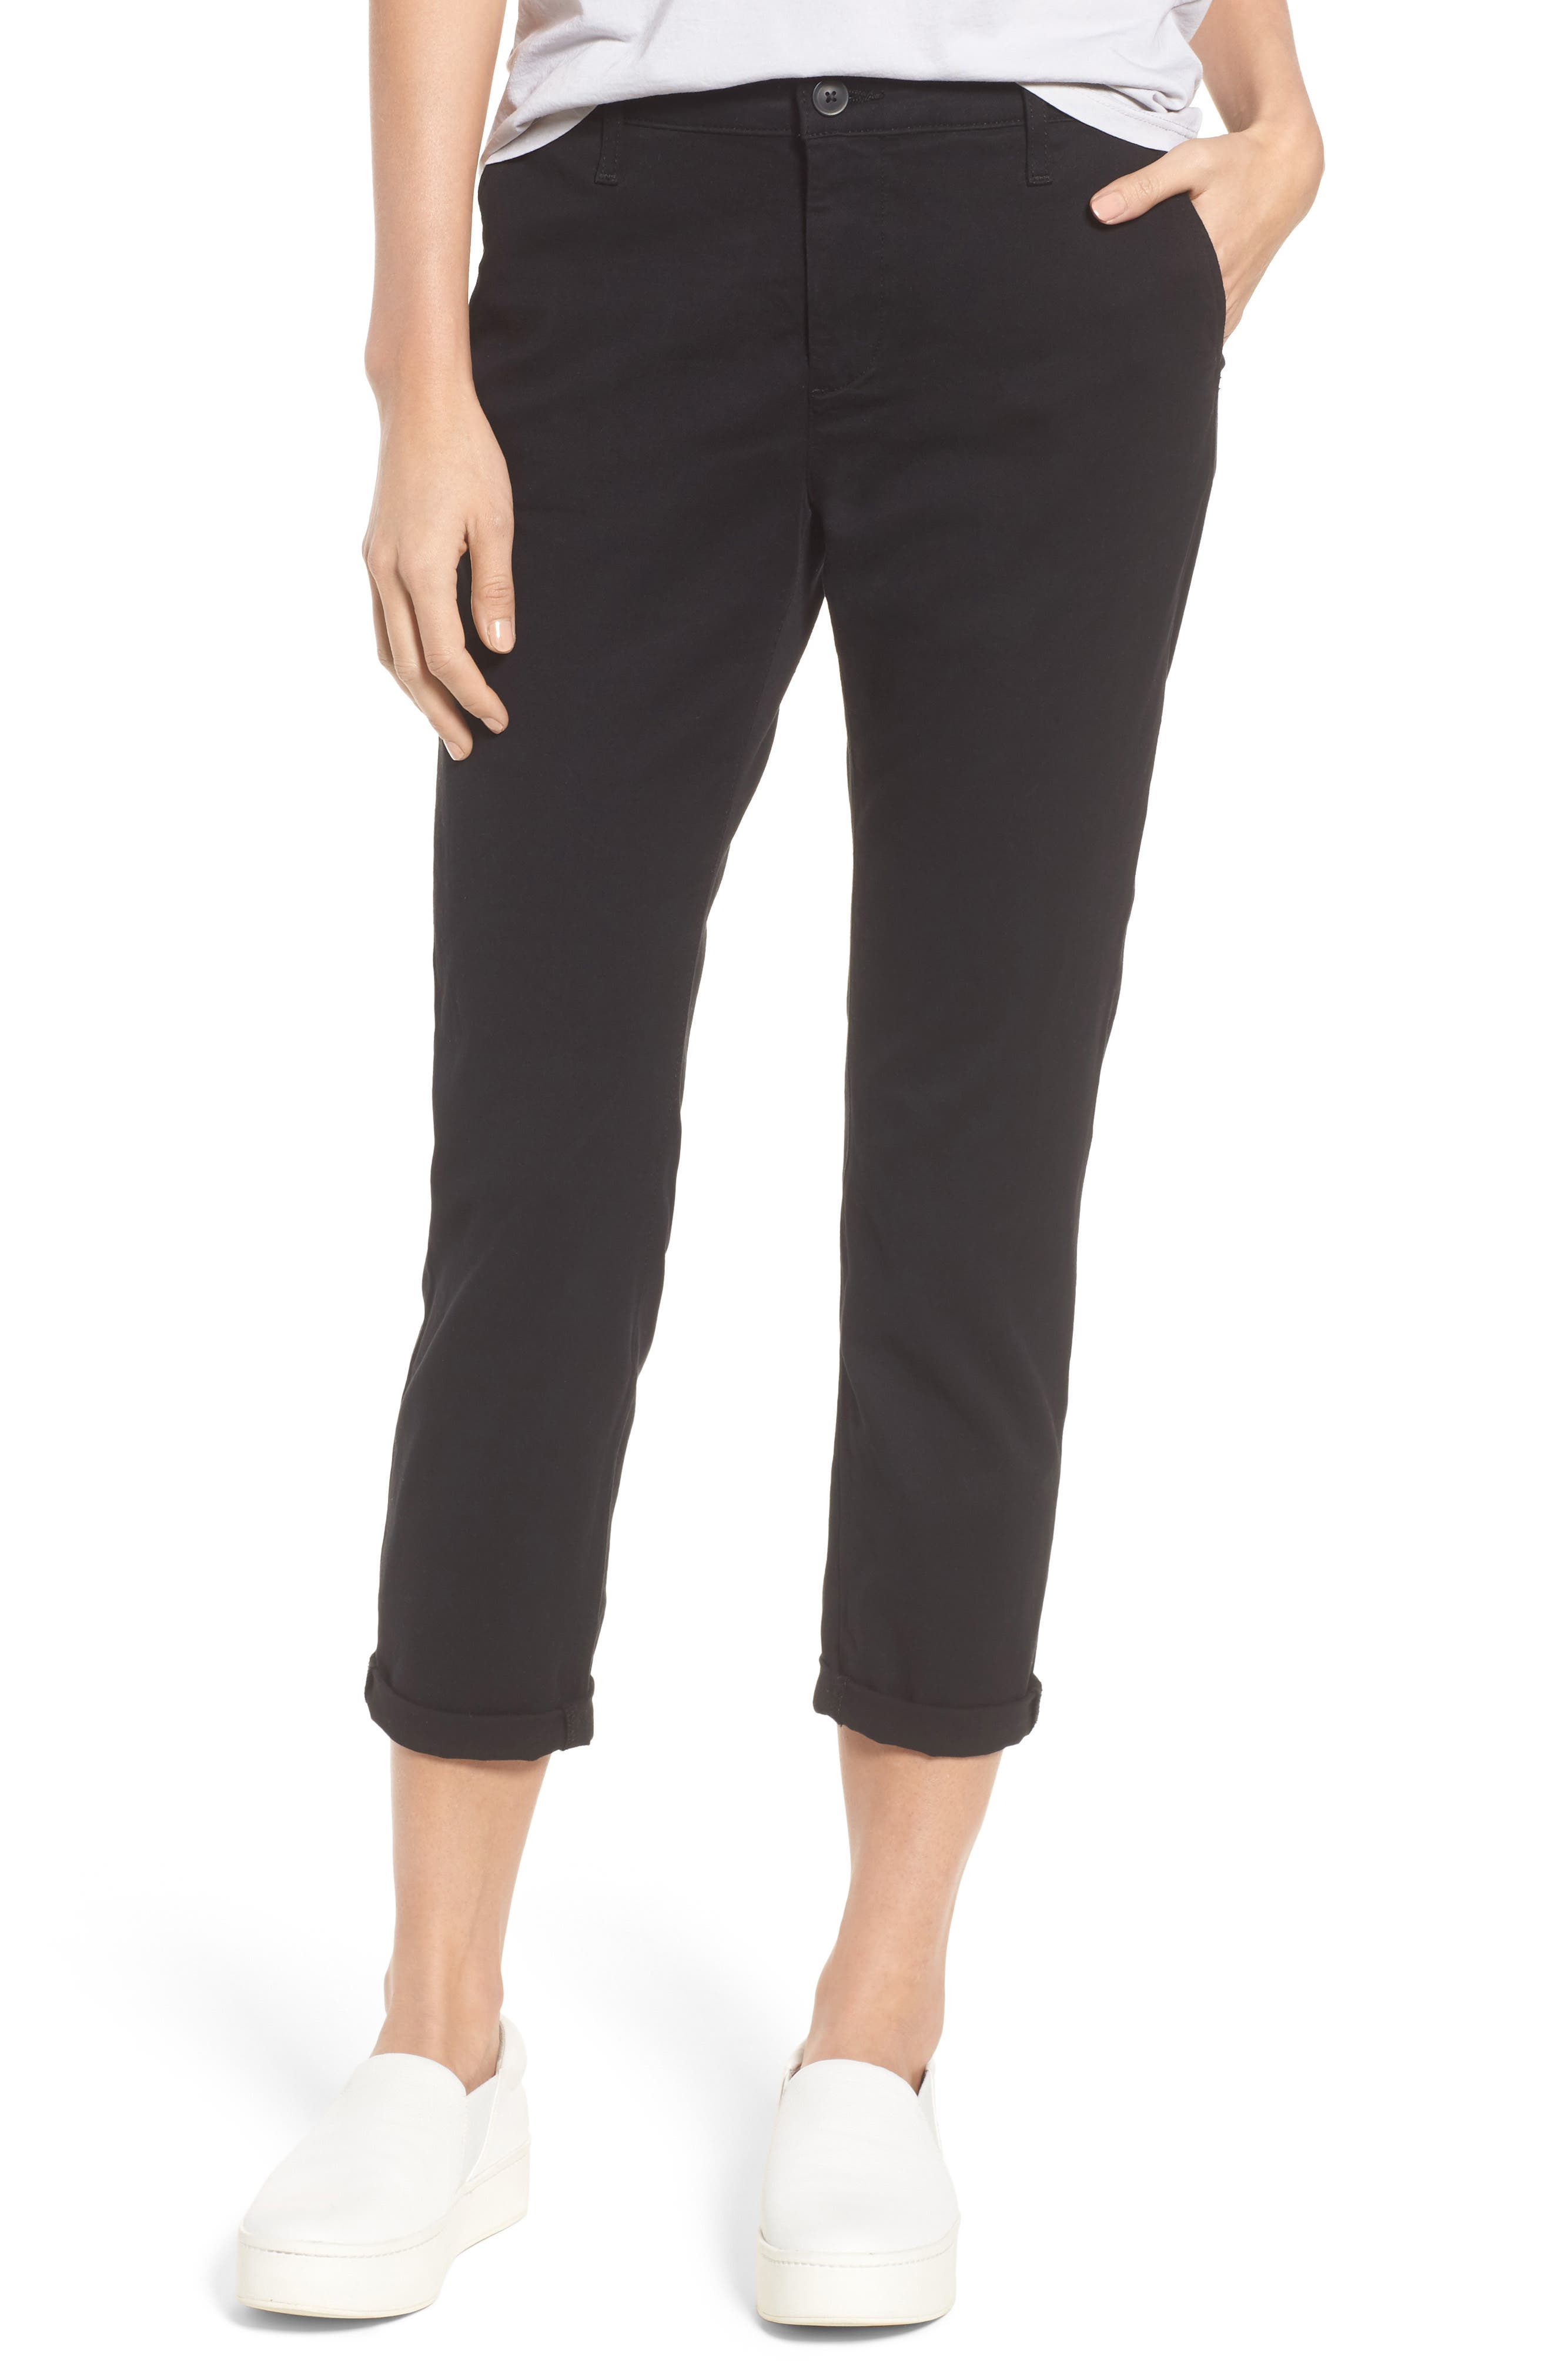 Caden Crop Twill Trousers,                         Main,                         color, 010